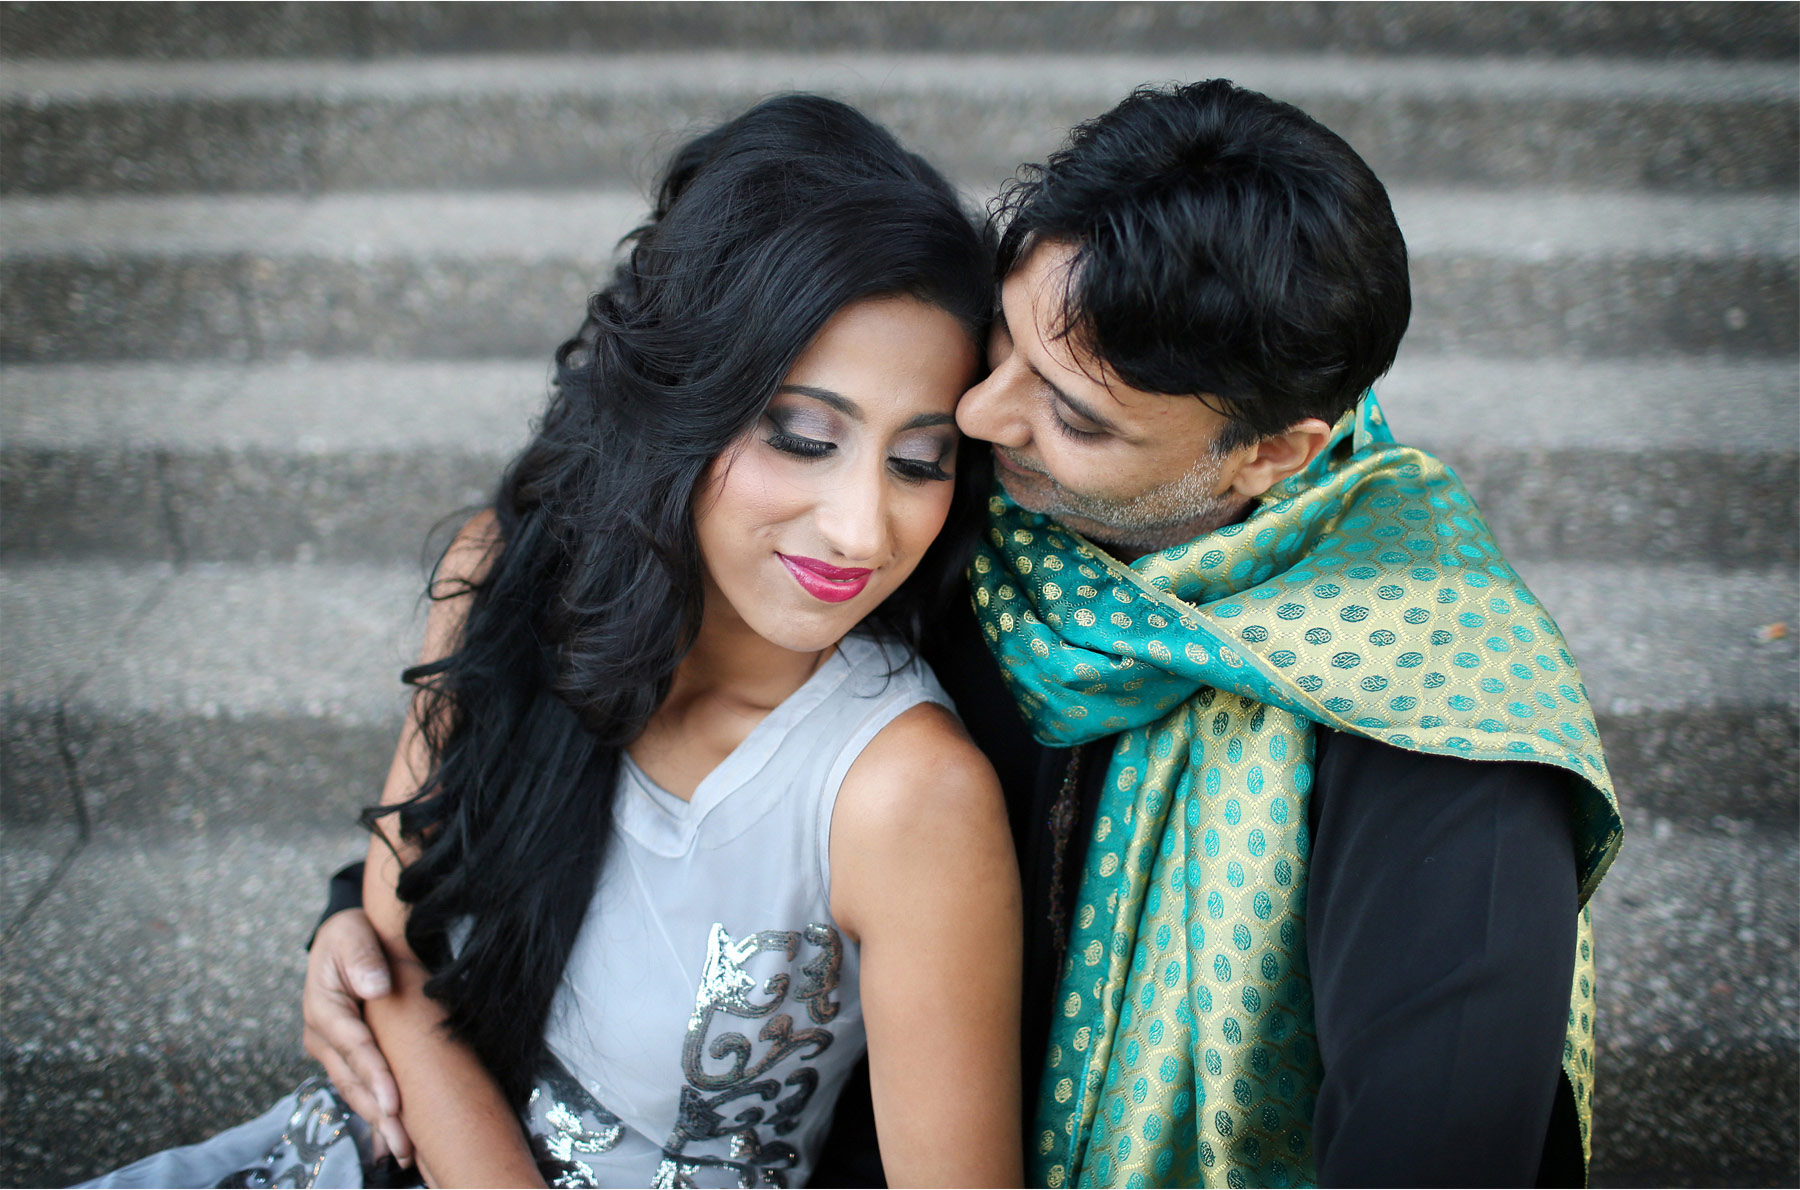 13-Minneapolis-Minnesota-Wedding-Photographer-by-Andrew-Vick-Photography-Summber-Engagement-Bride-Groom-Guthrie-Theater-Embrace-Tradional-Indian-Clothing-Natasha-and-Sohail.jpg